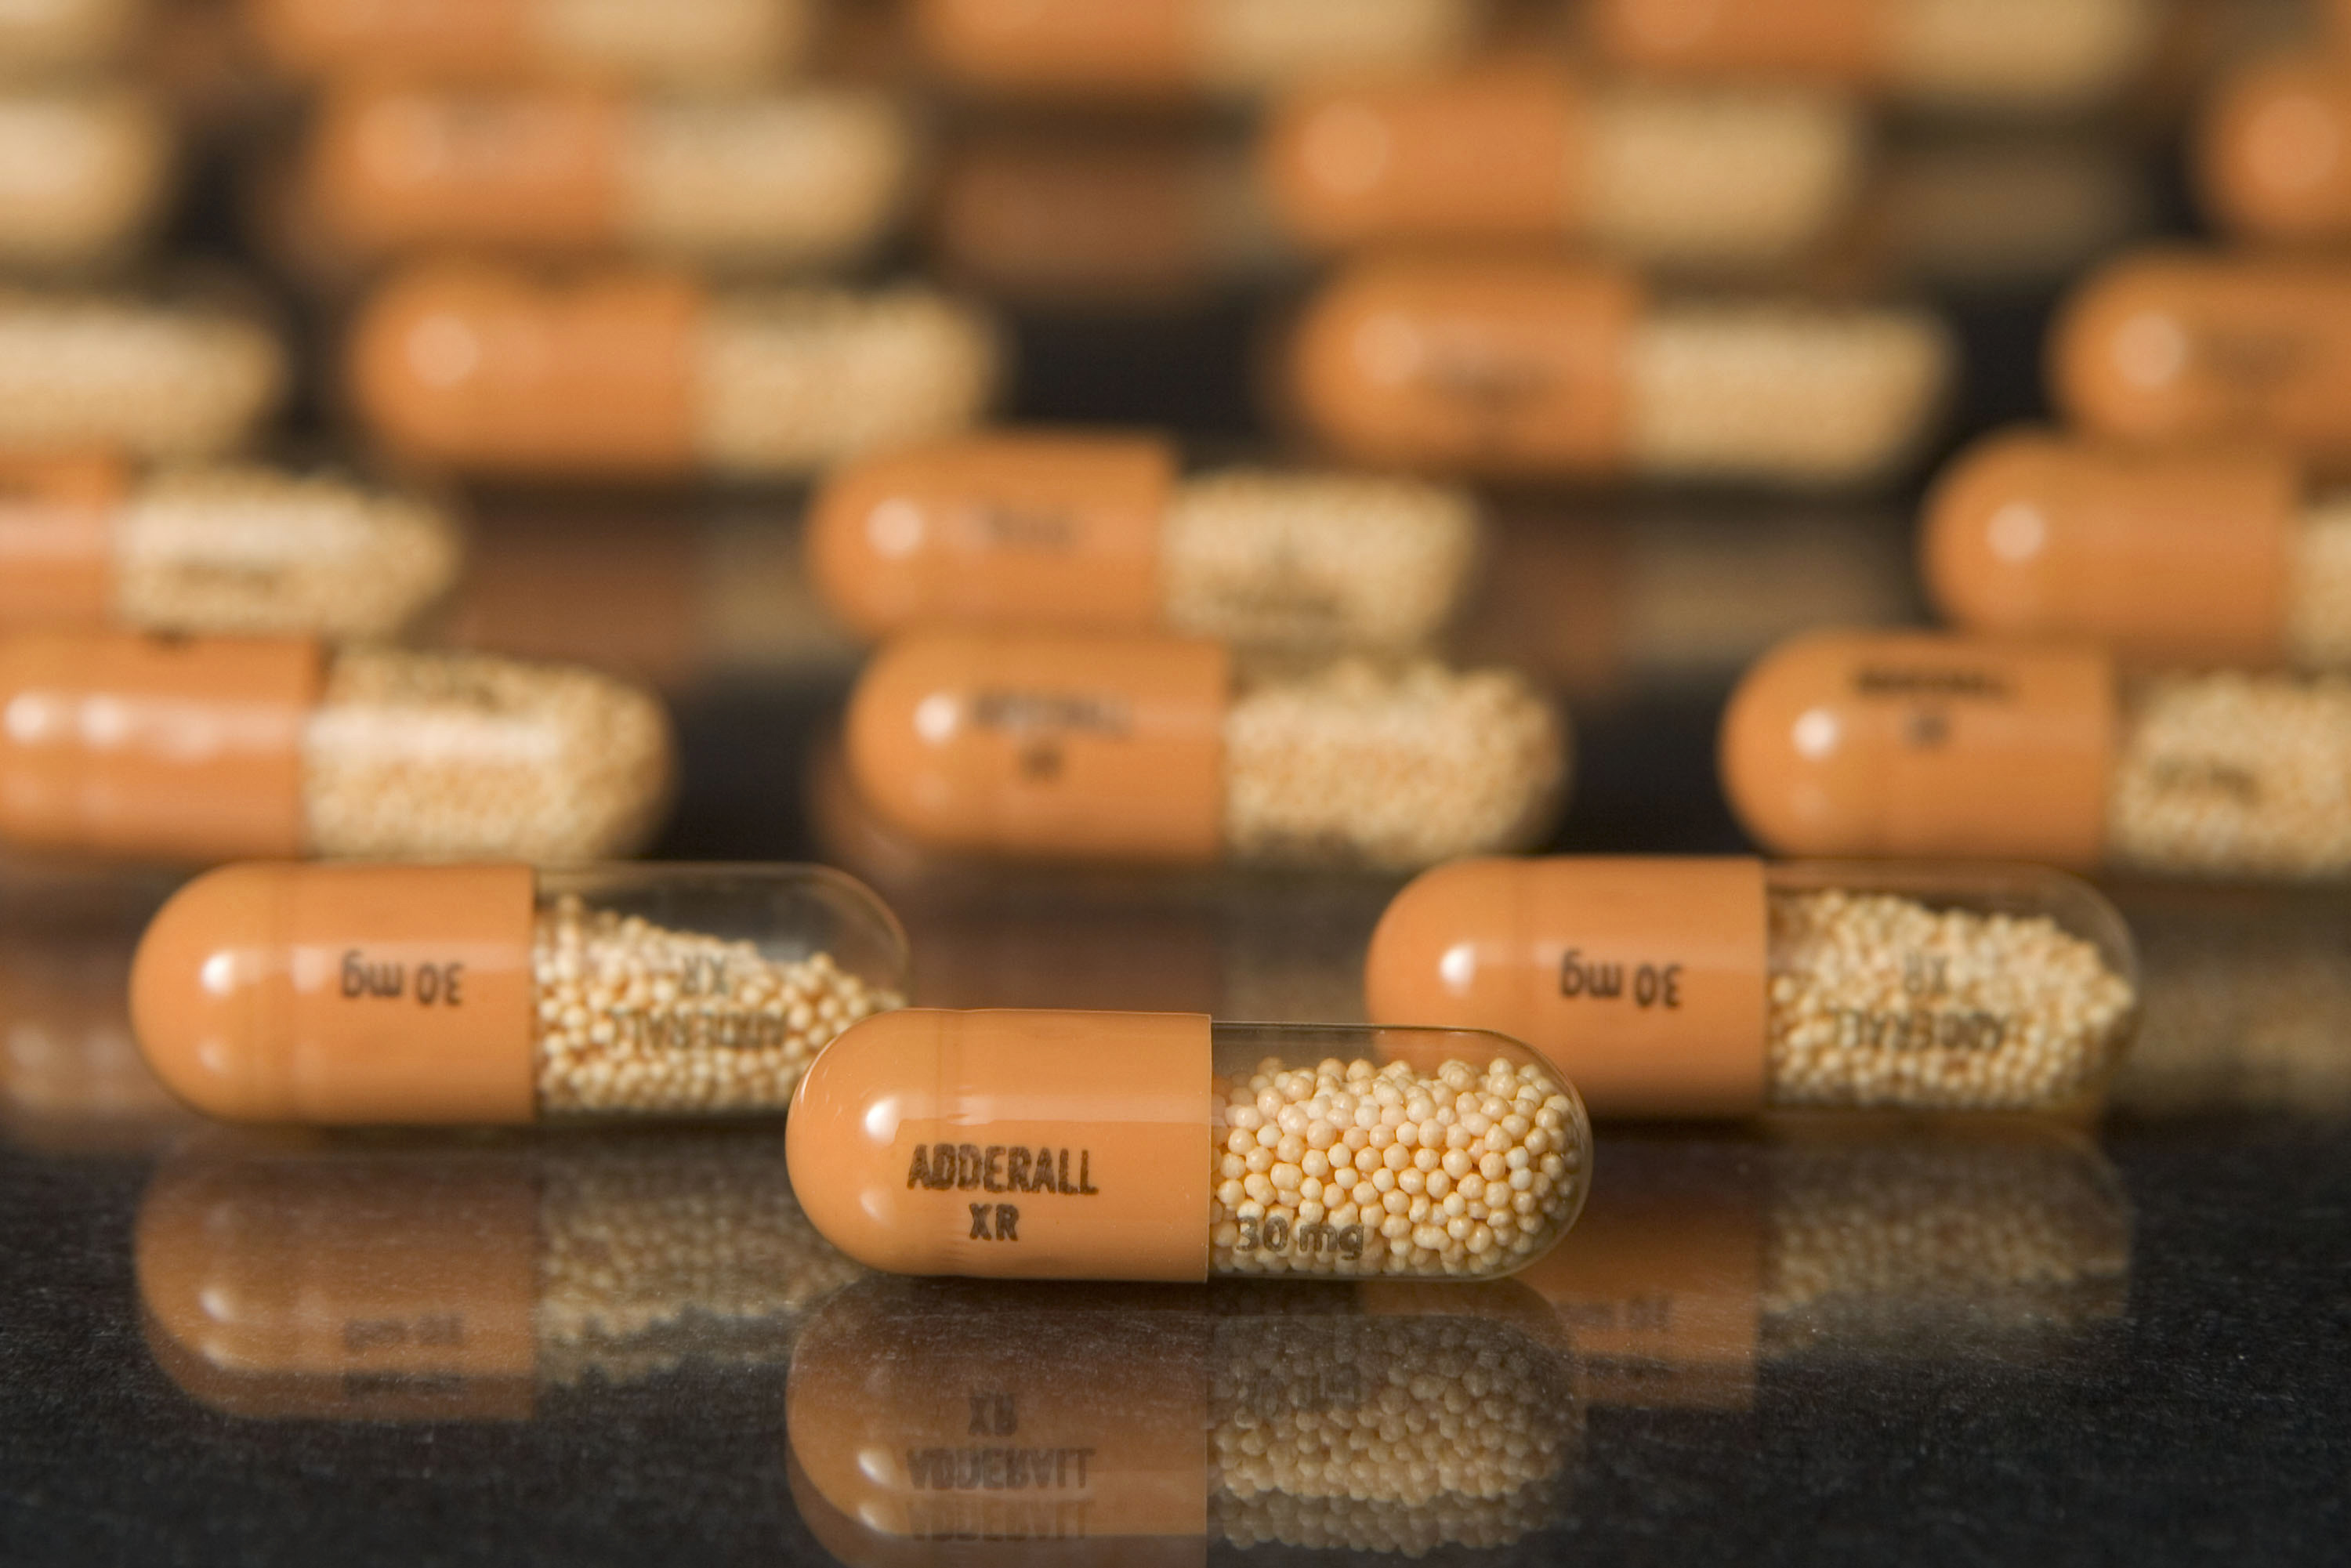 30mg Tablets Of Shire Plc's Adderall Xr Are Arranged In A Cambridge,  Massachusetts Pharmacy On